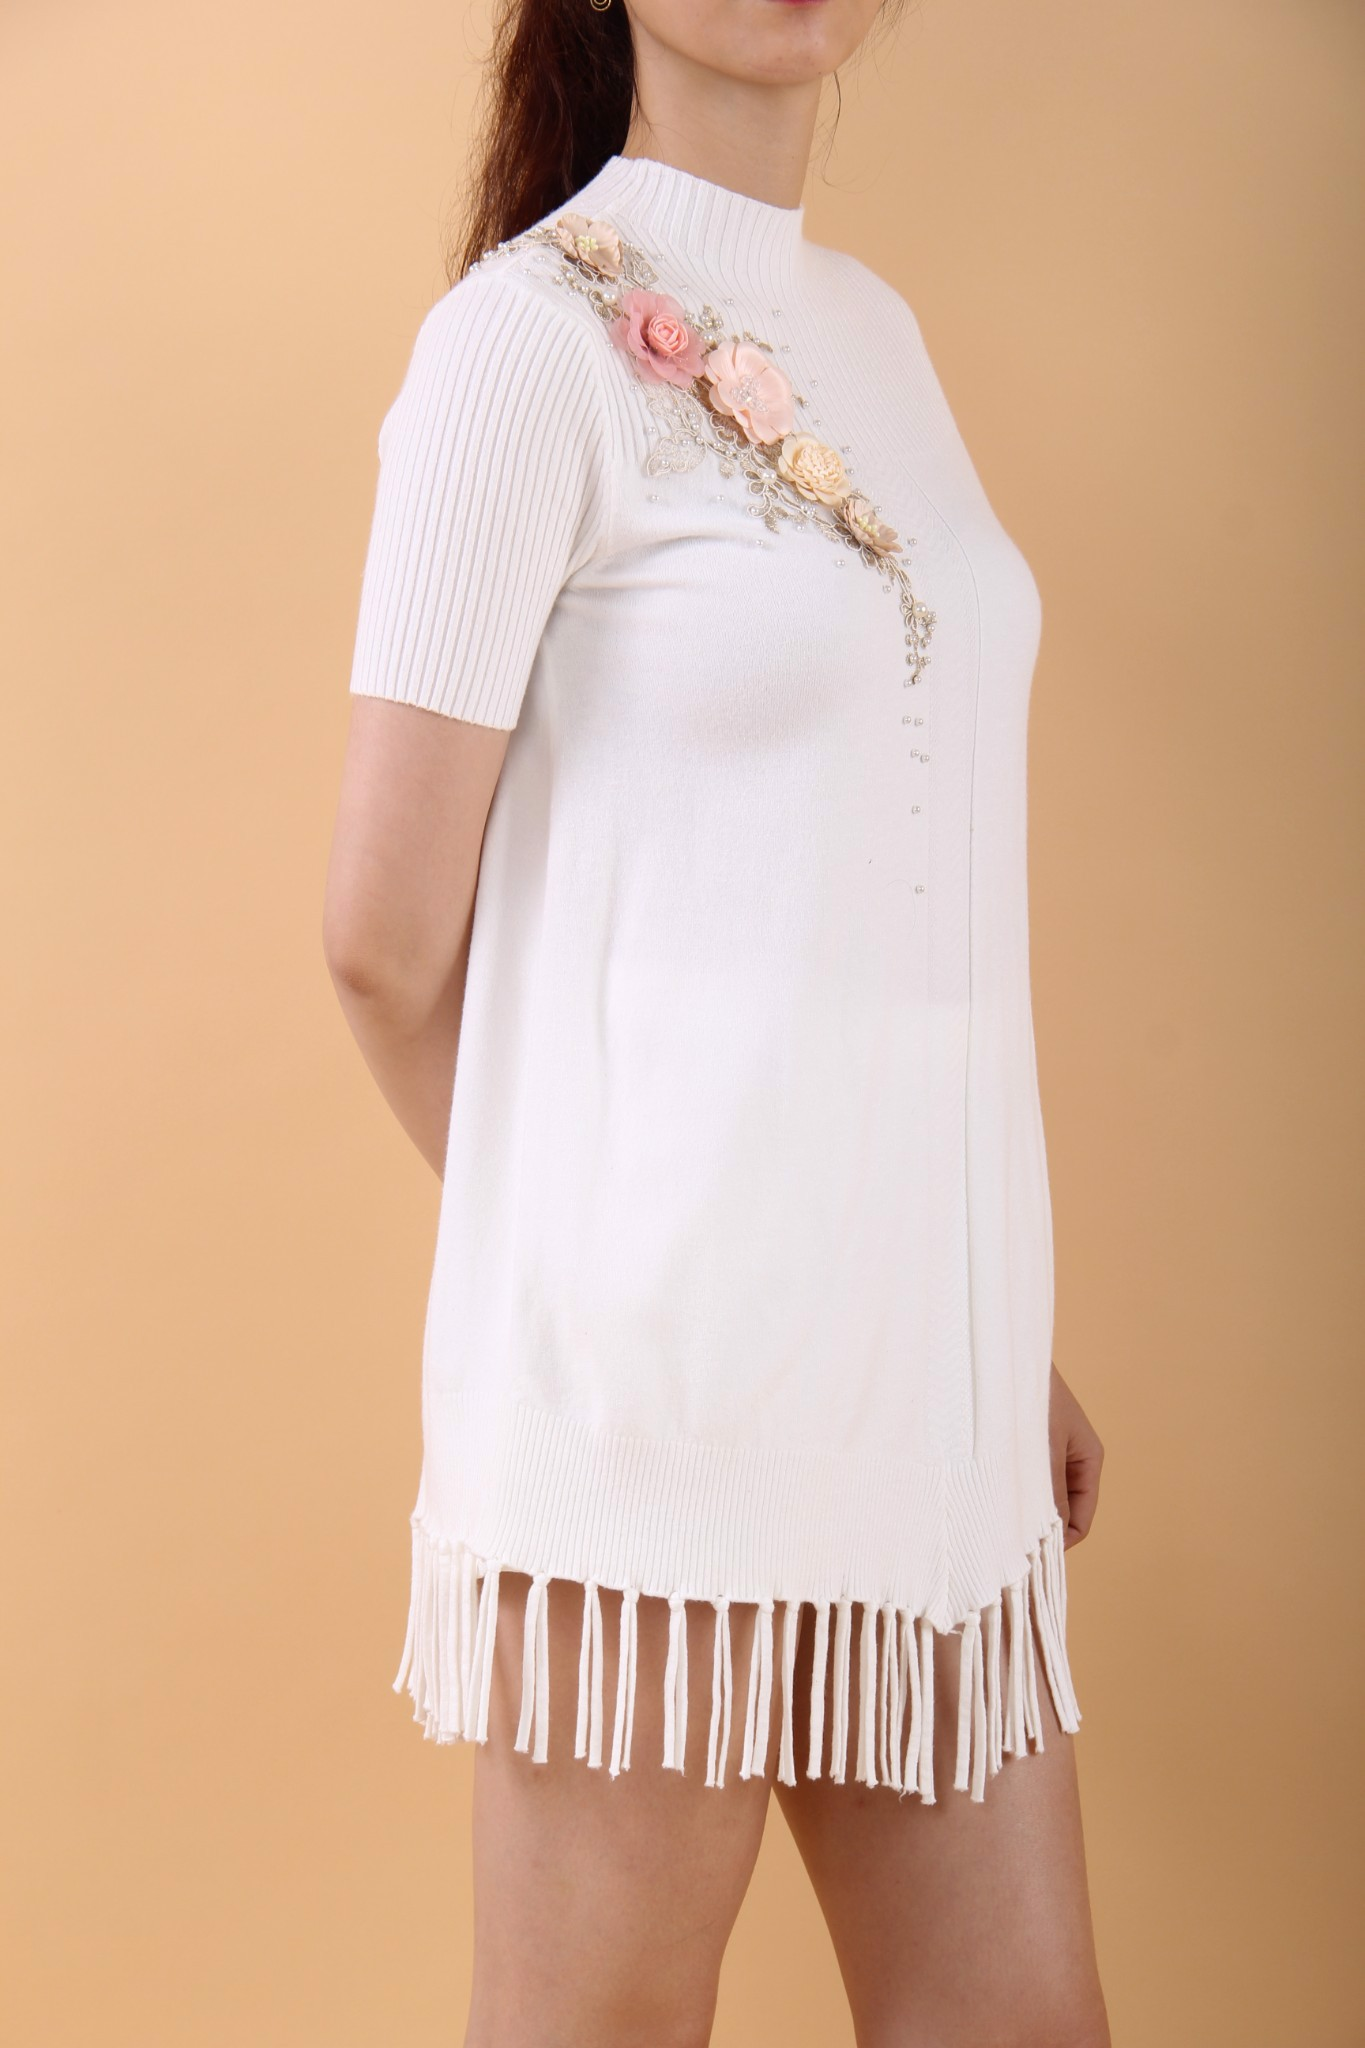 3D flowers and pearls white flapper dress